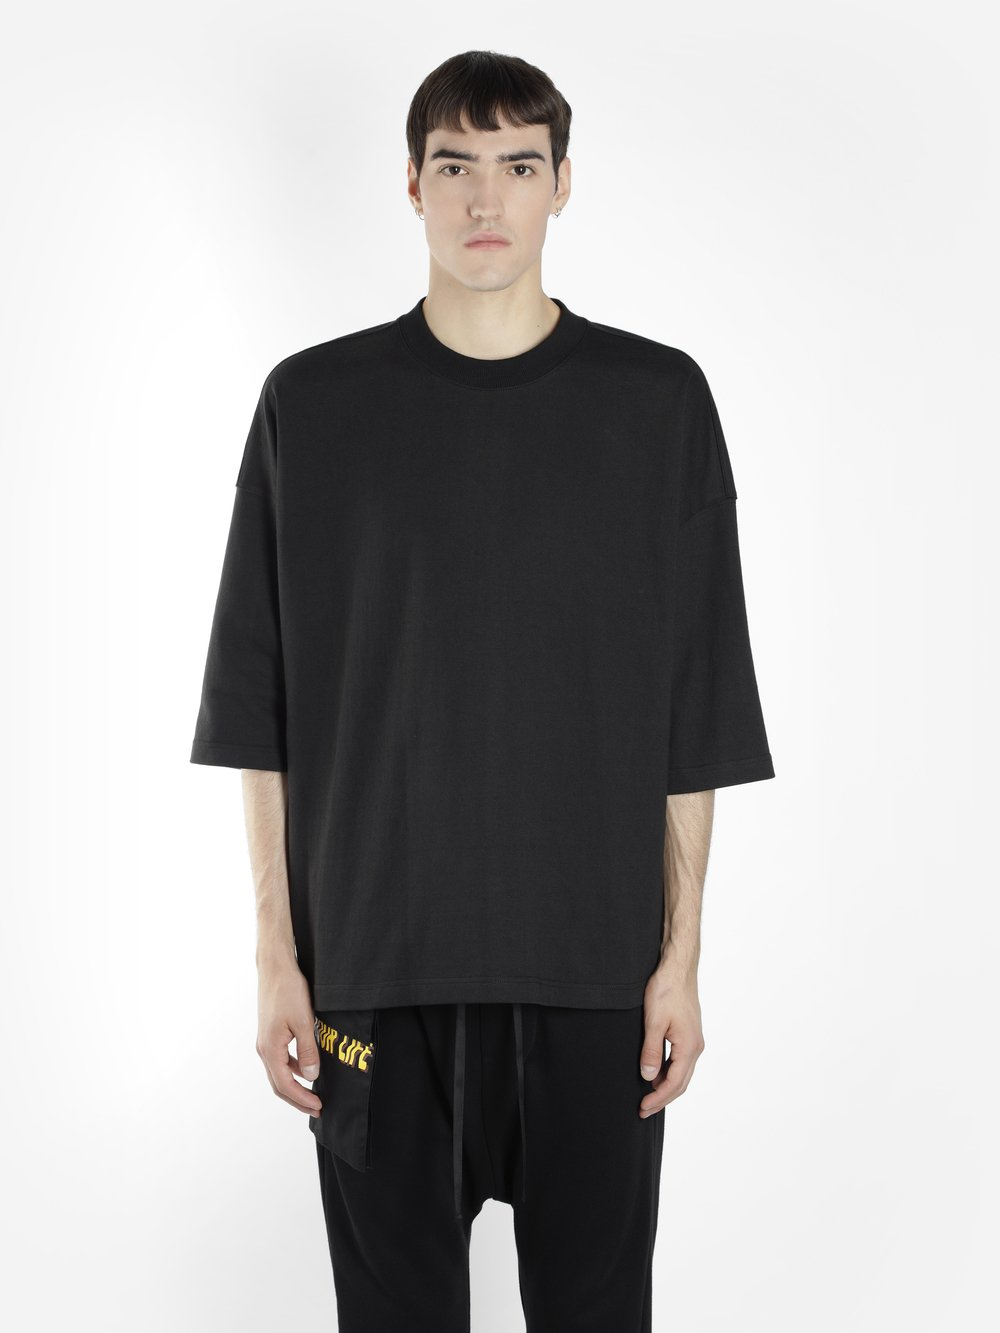 D BY D MEN'S BLACK SWEATER WITH BACK YELLOW ZIP